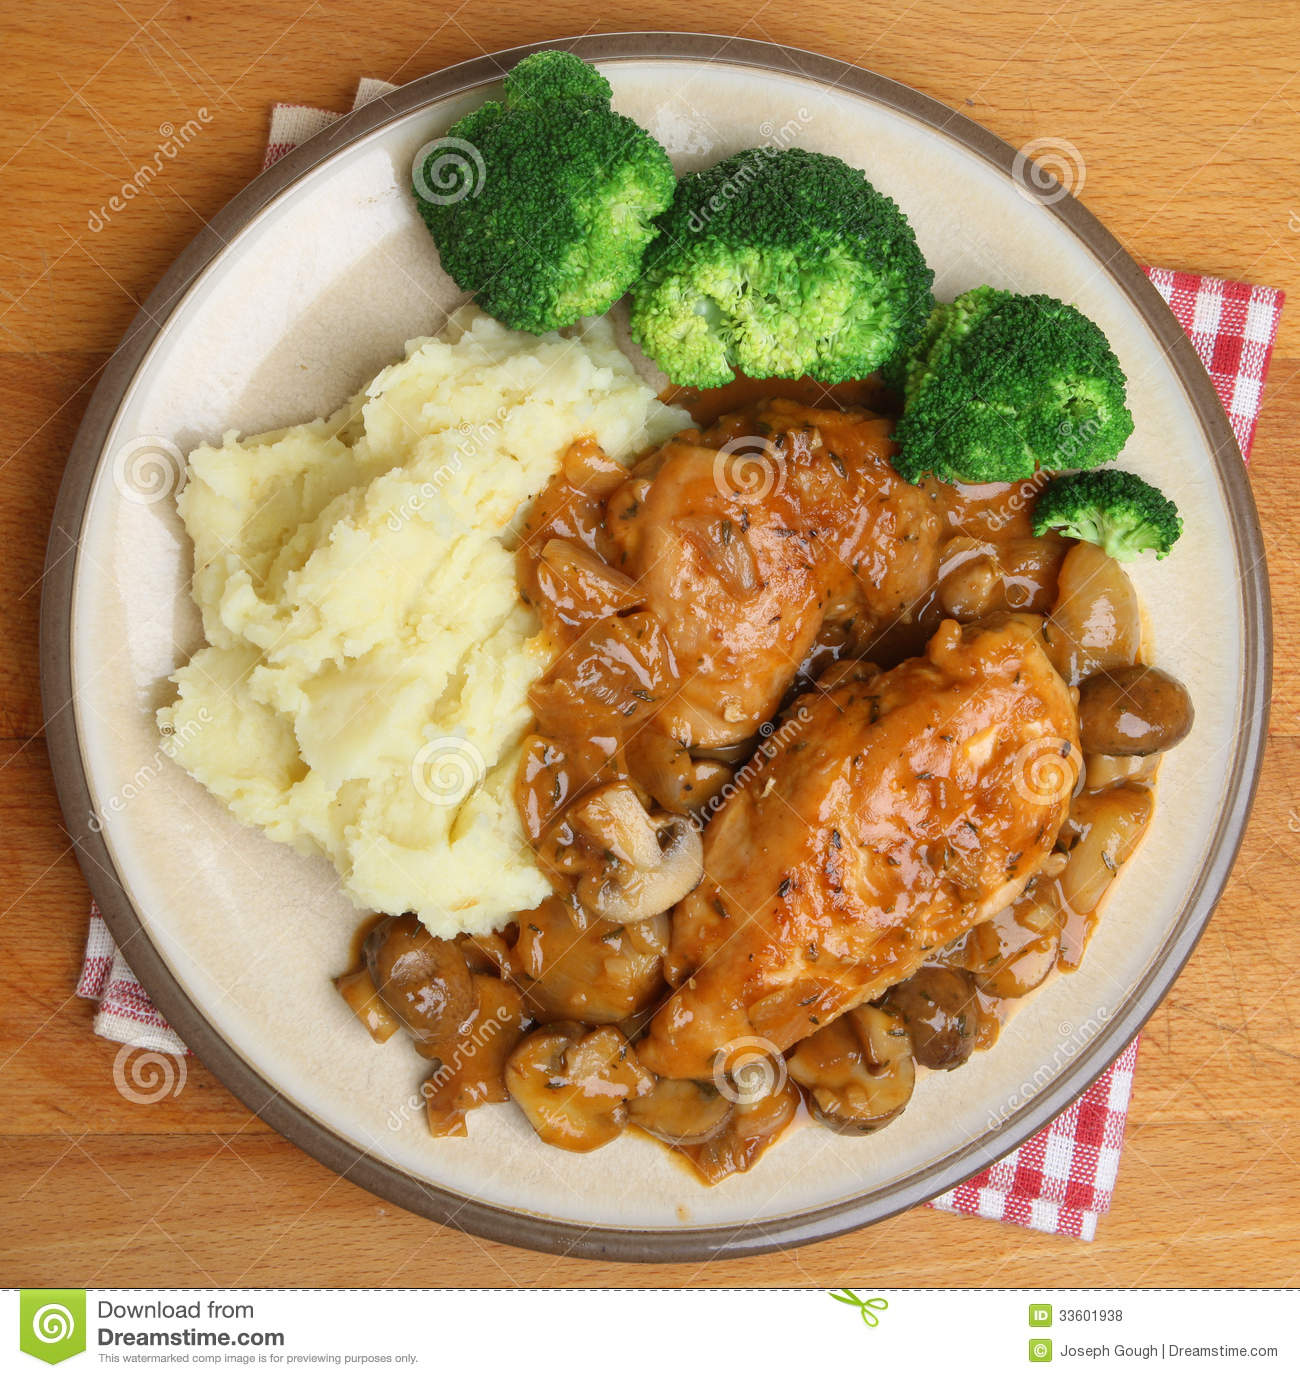 Vegetarian Food additionally Wood Grilled Prosciutto Wrapped Pork Medallions With A Fig Port Wine Sauce also School Lunches Around The World n 6746164 as well Beef Tartare Recipe in addition Christmas Dinner Menu. on best italian steak recipe